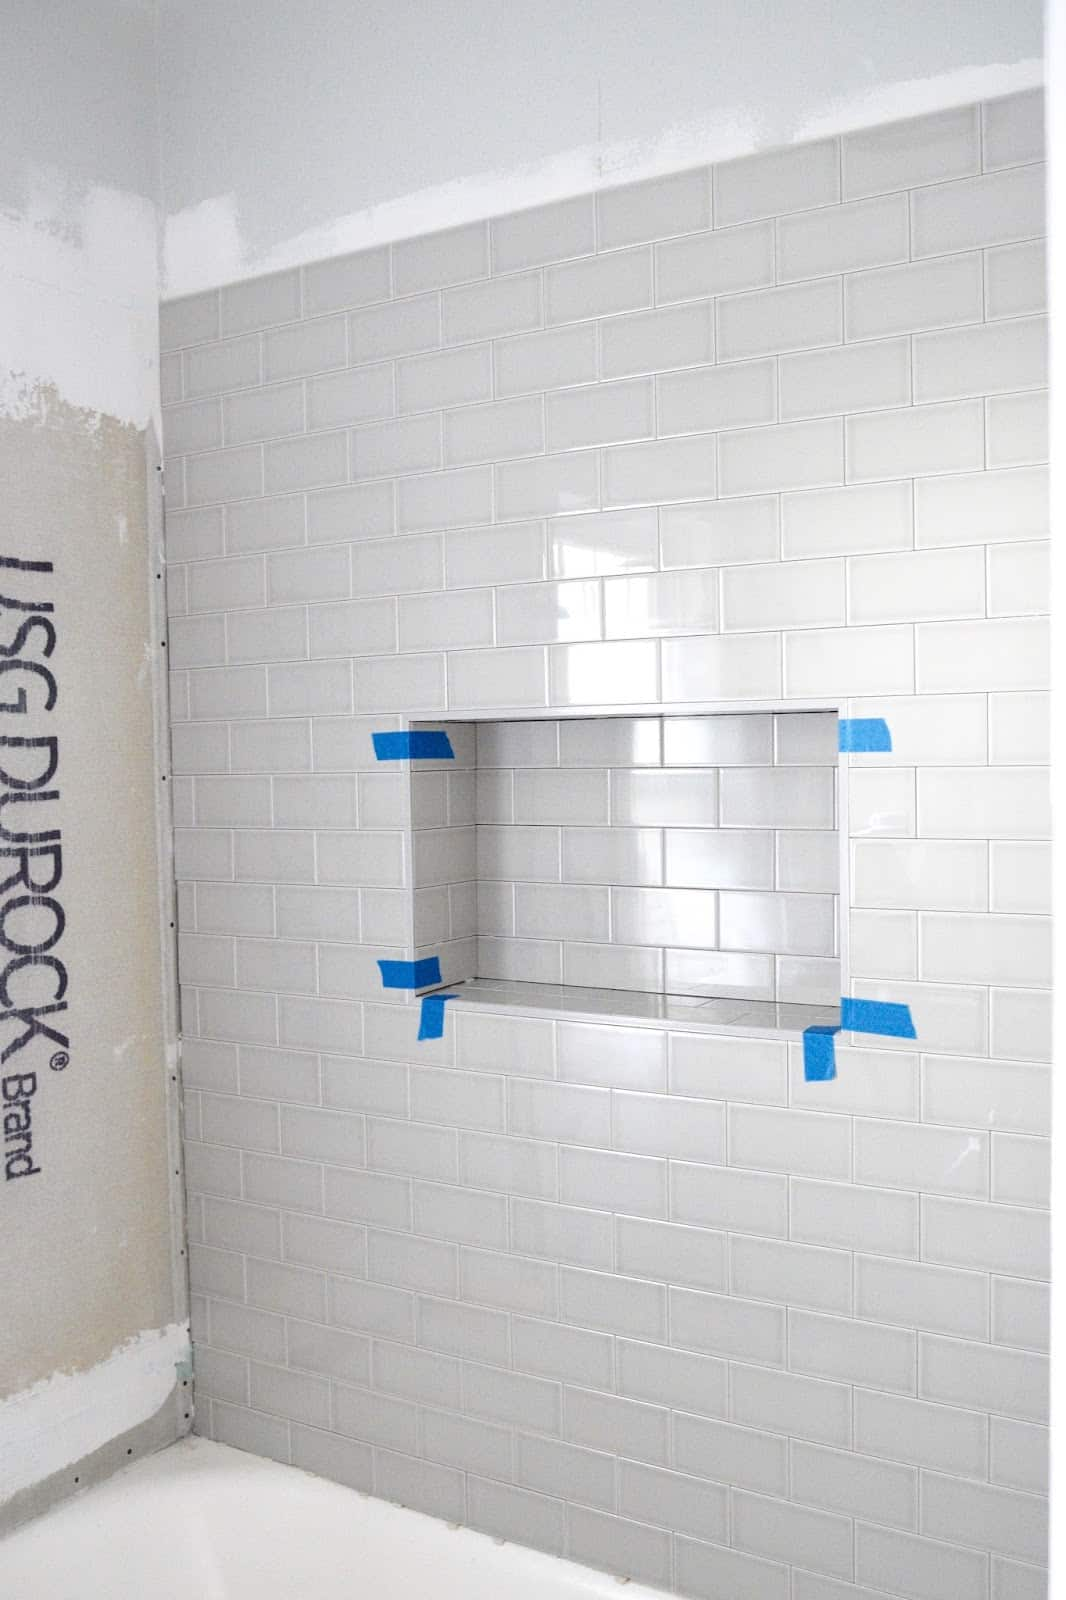 Subway tiling a wall with a shower niche